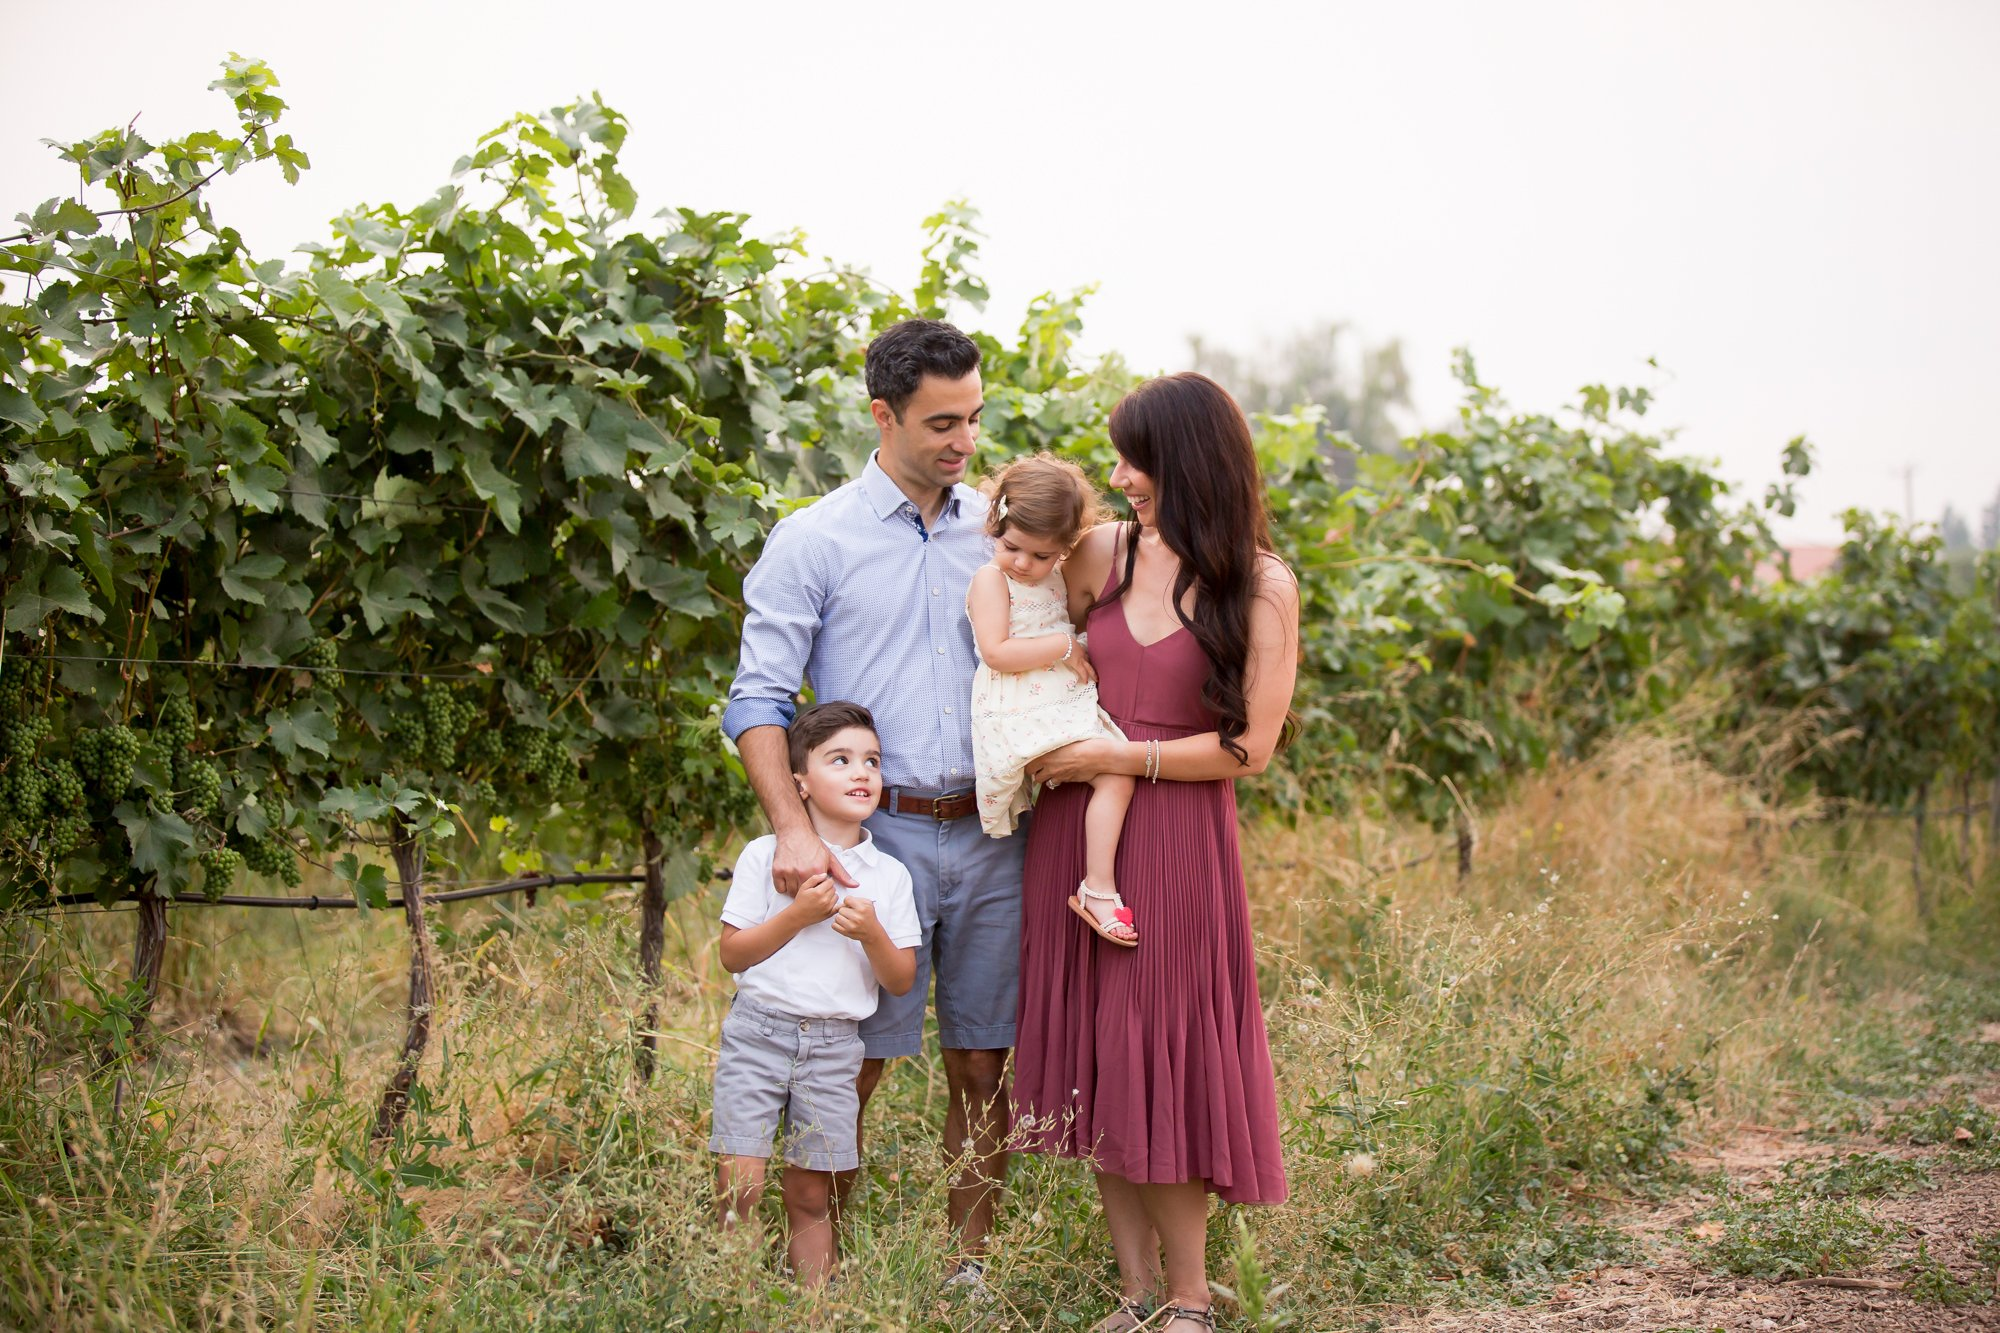 A family looking at each othe rin a vineyard